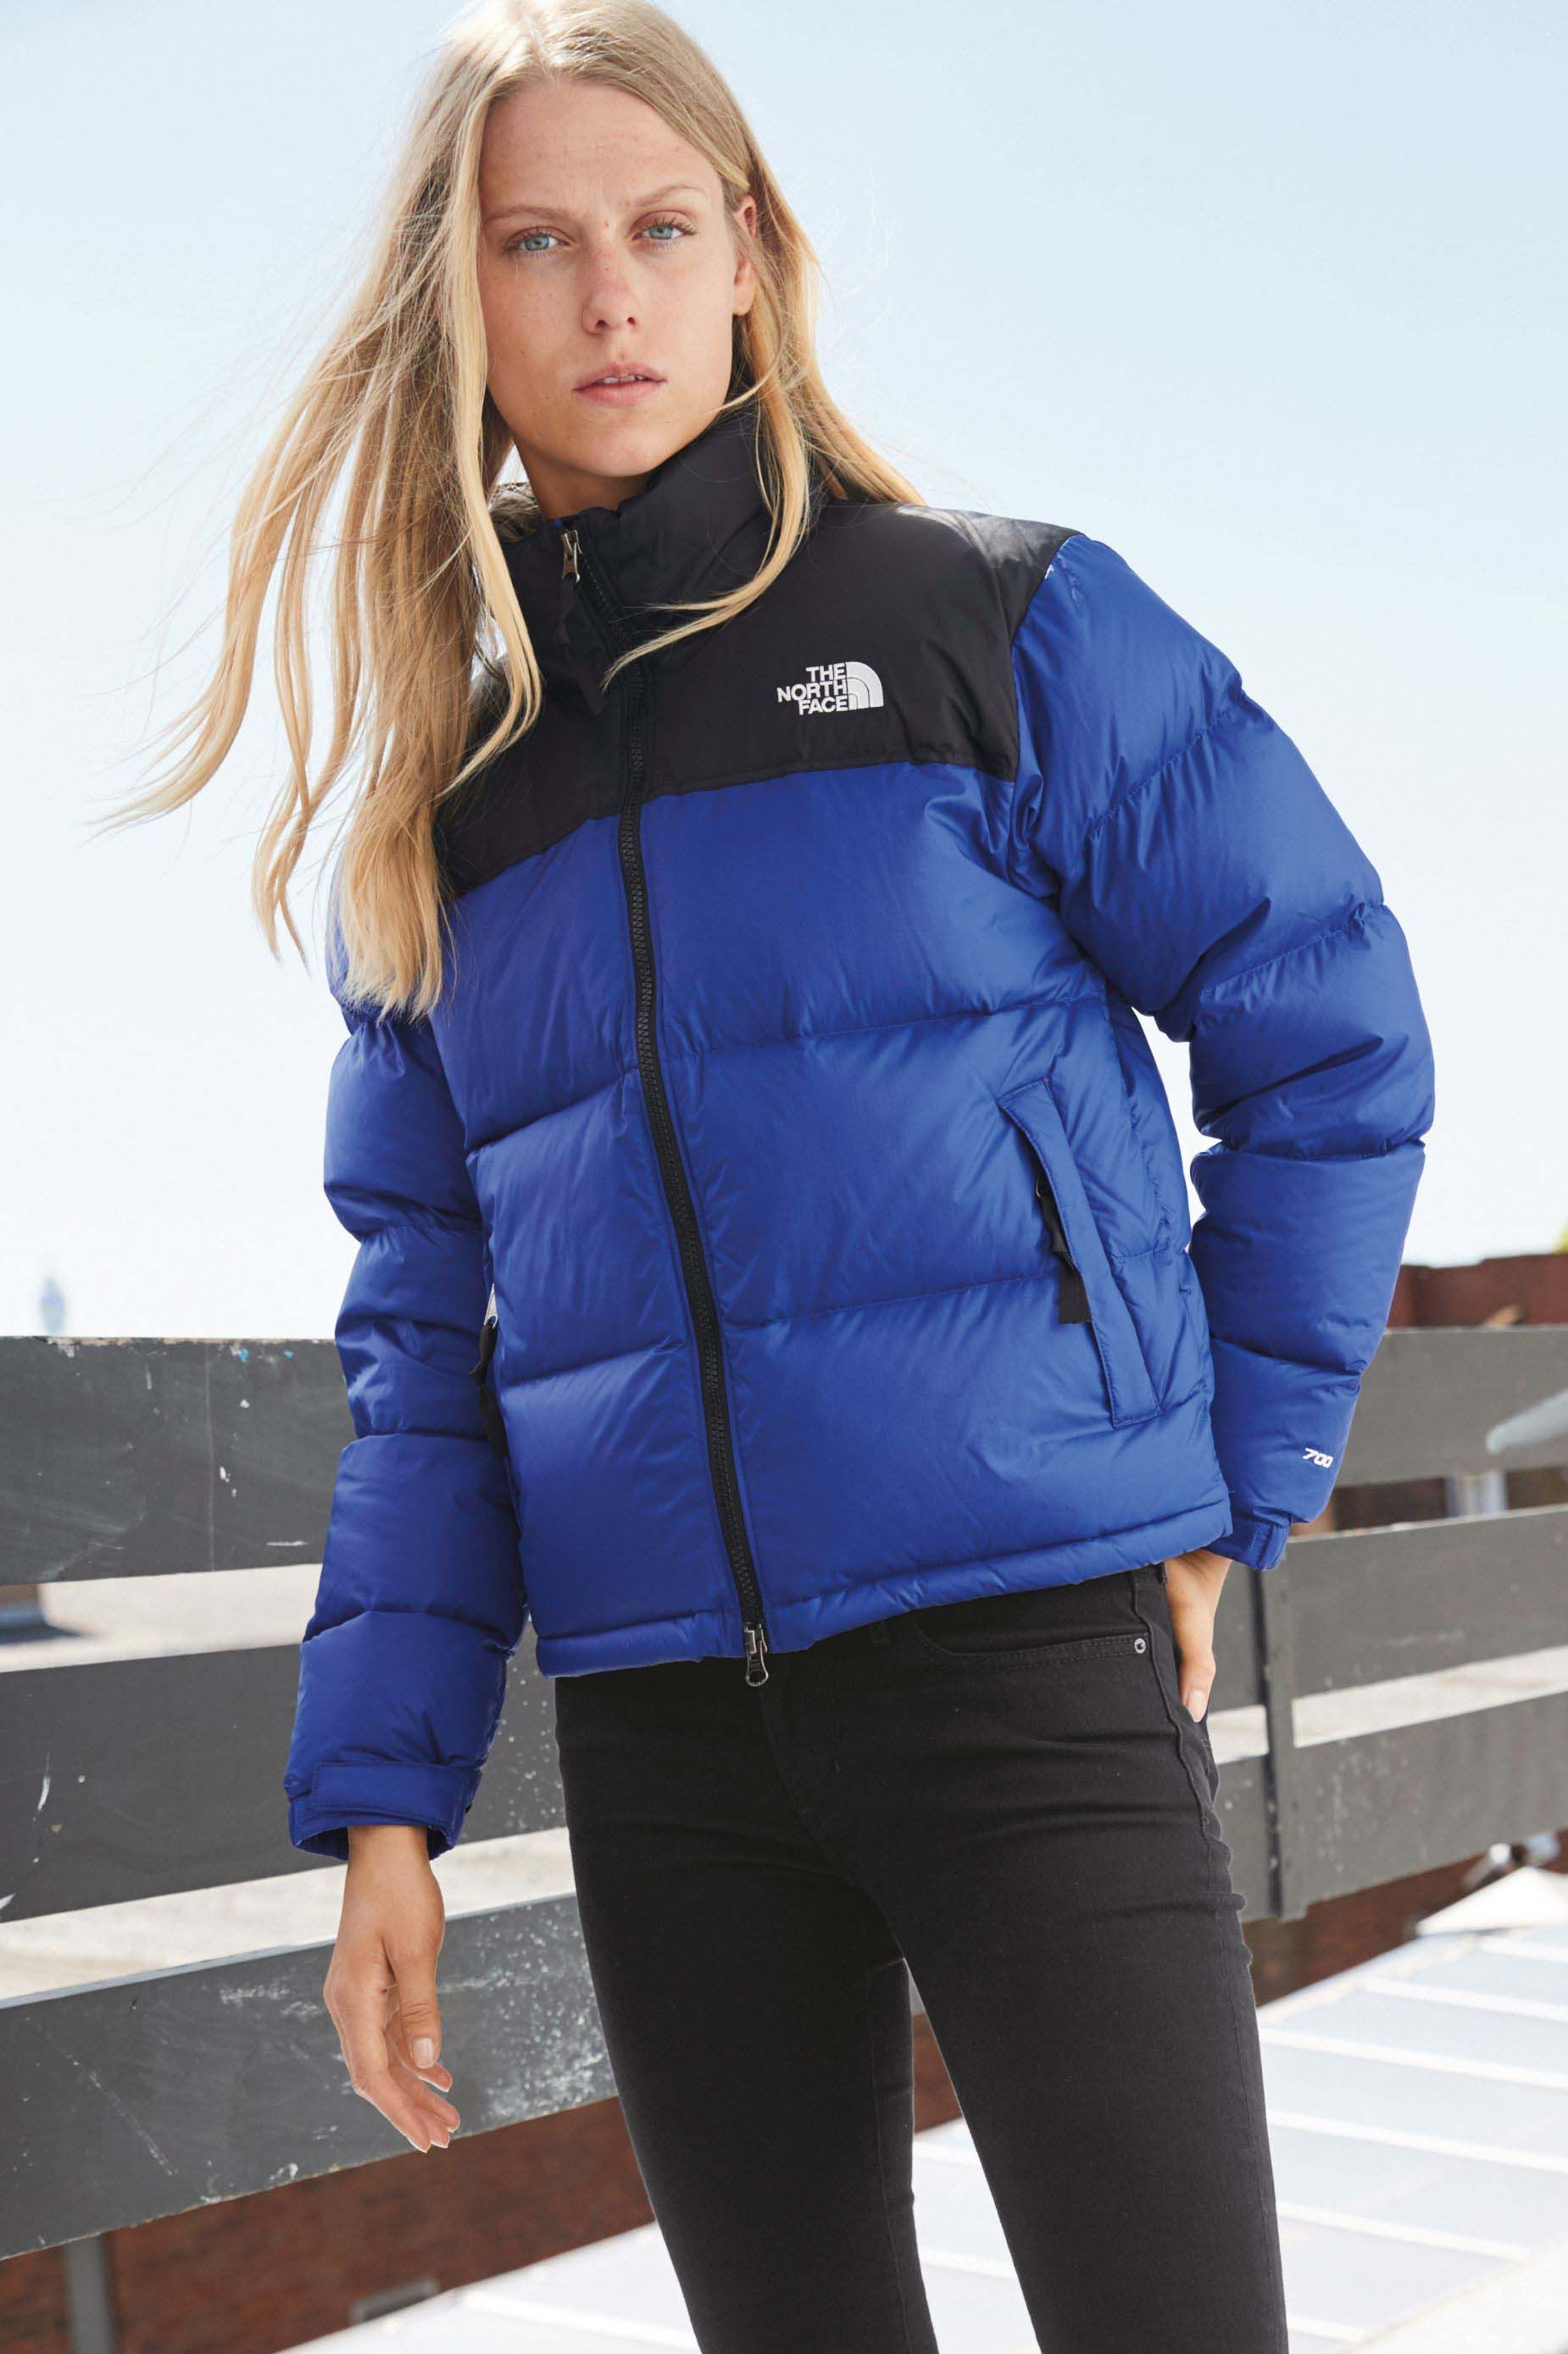 4080bed0a Womens The North Face 1996 Retro Nuptse Jacket - Blue | S T Y L E in ...